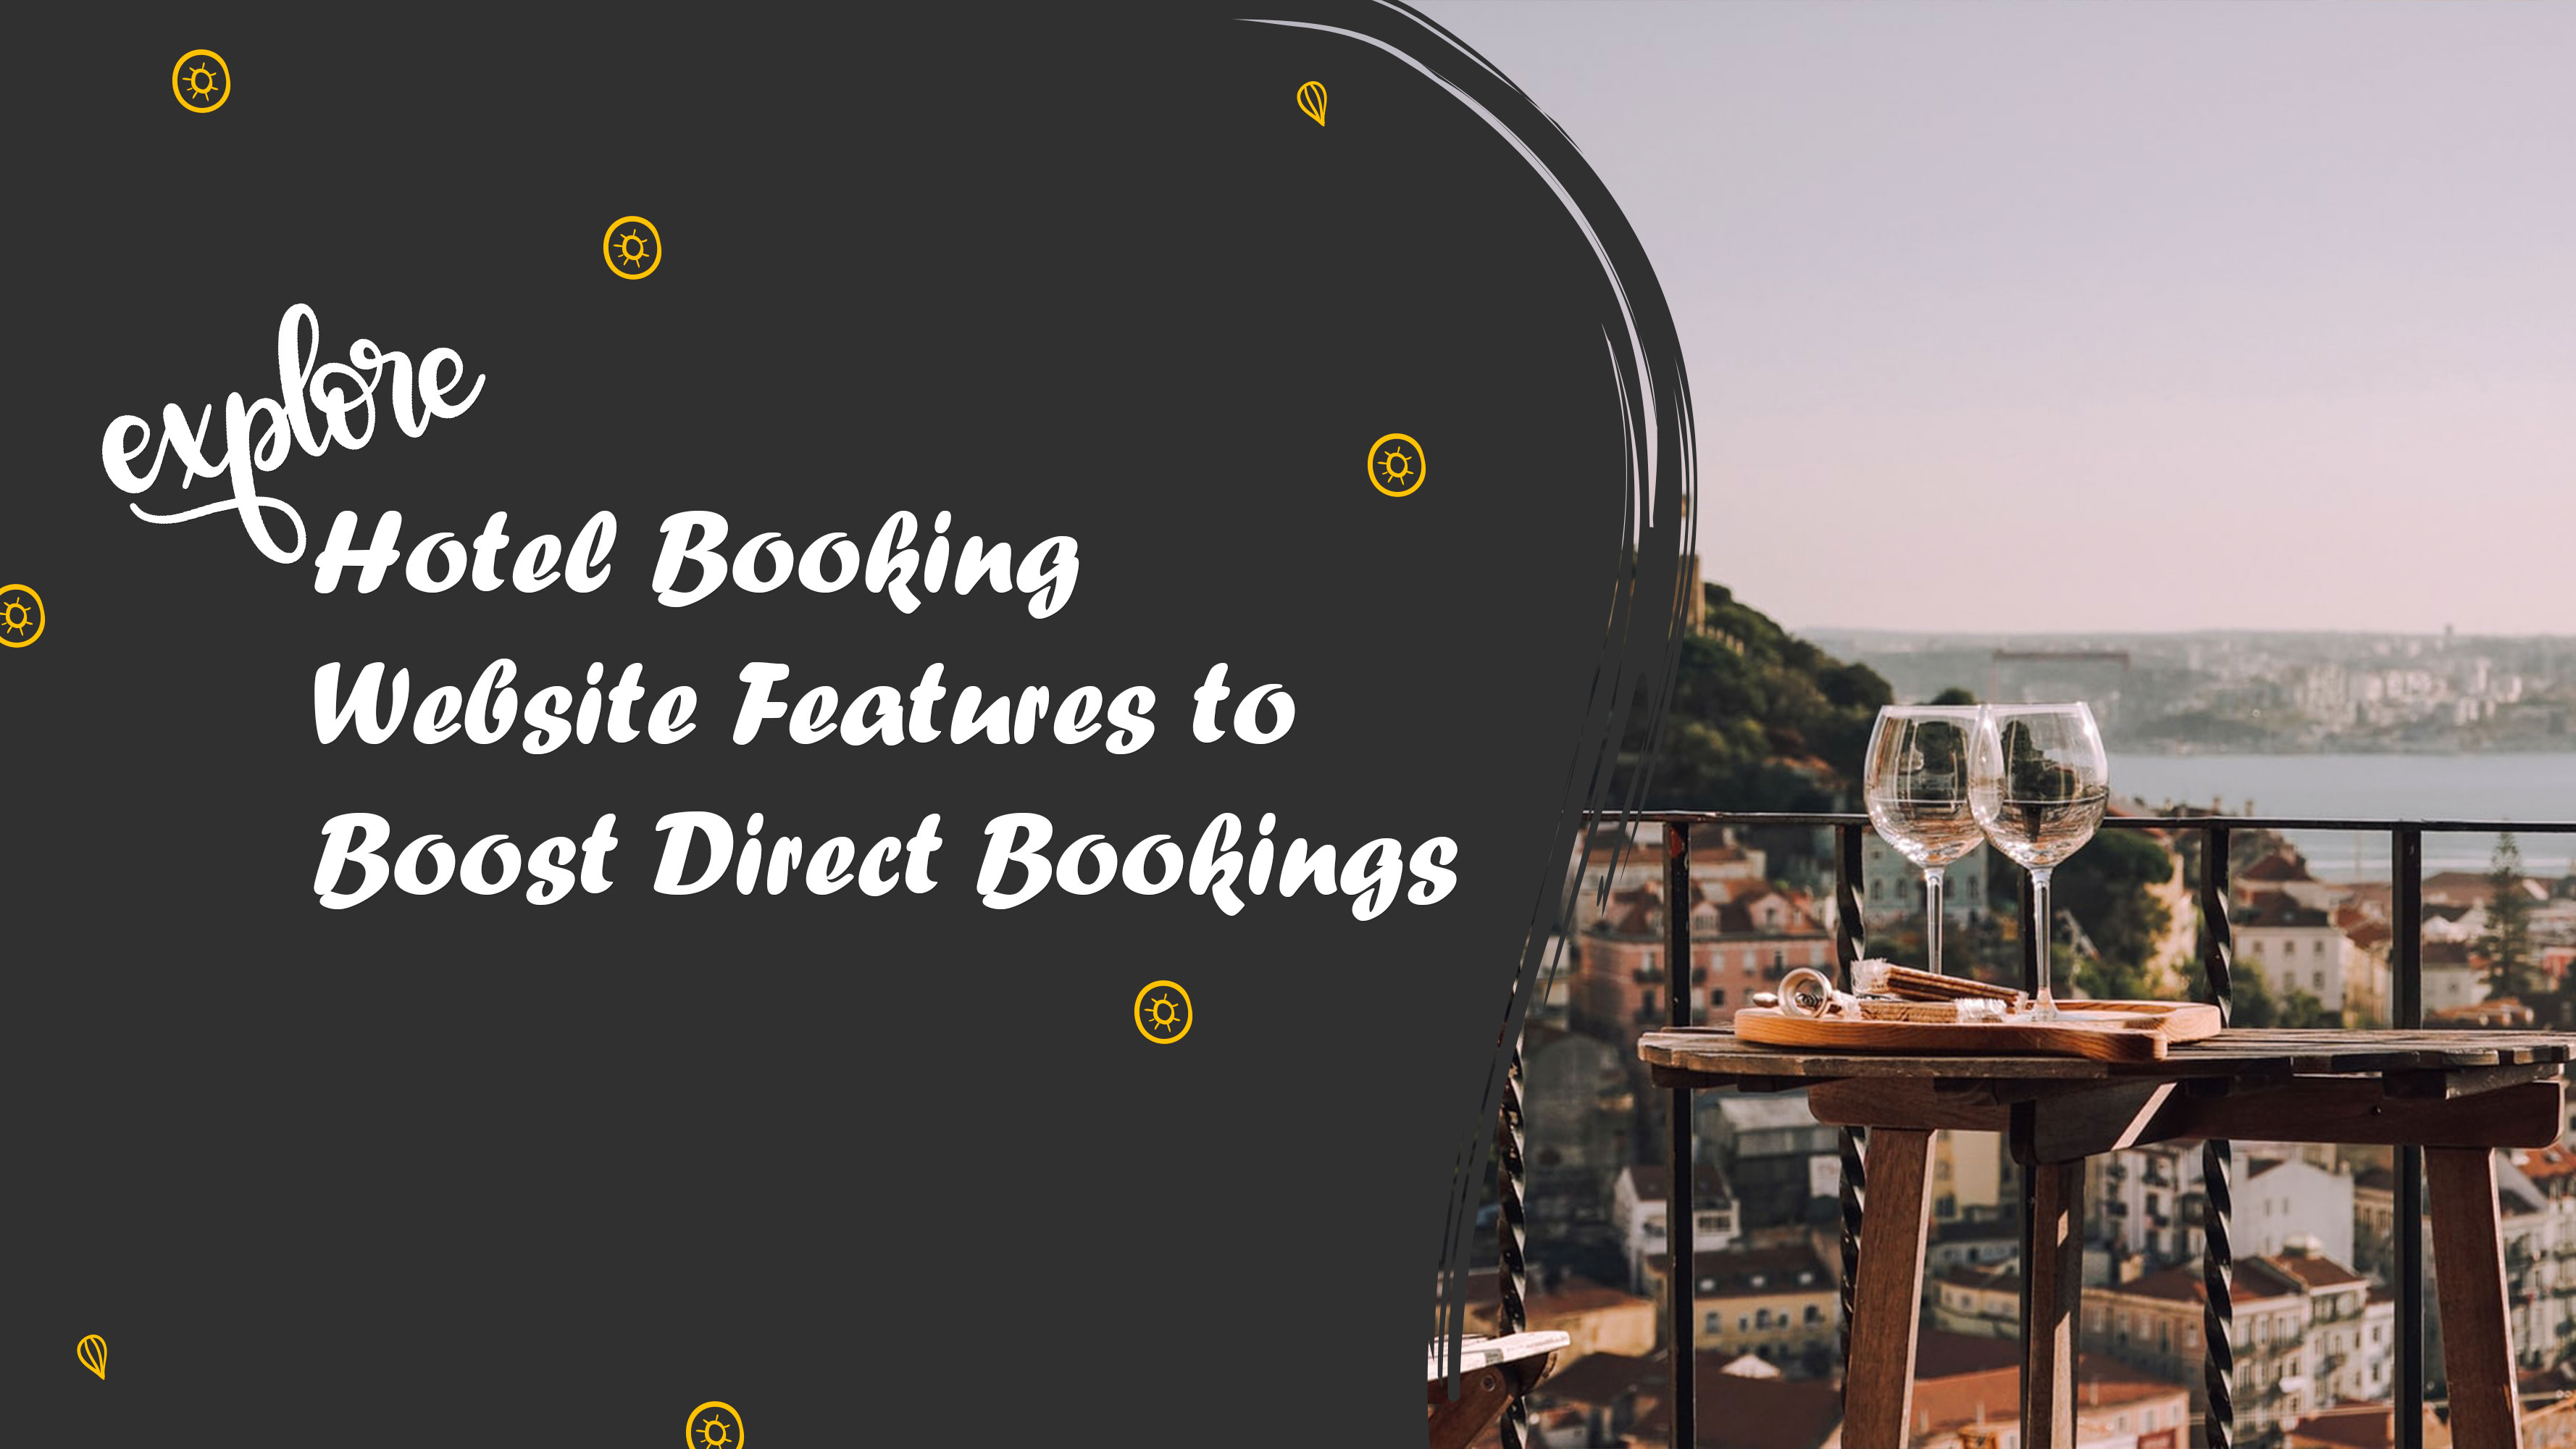 Explore Hotel Booking Website Features to Boost Direct Bookings